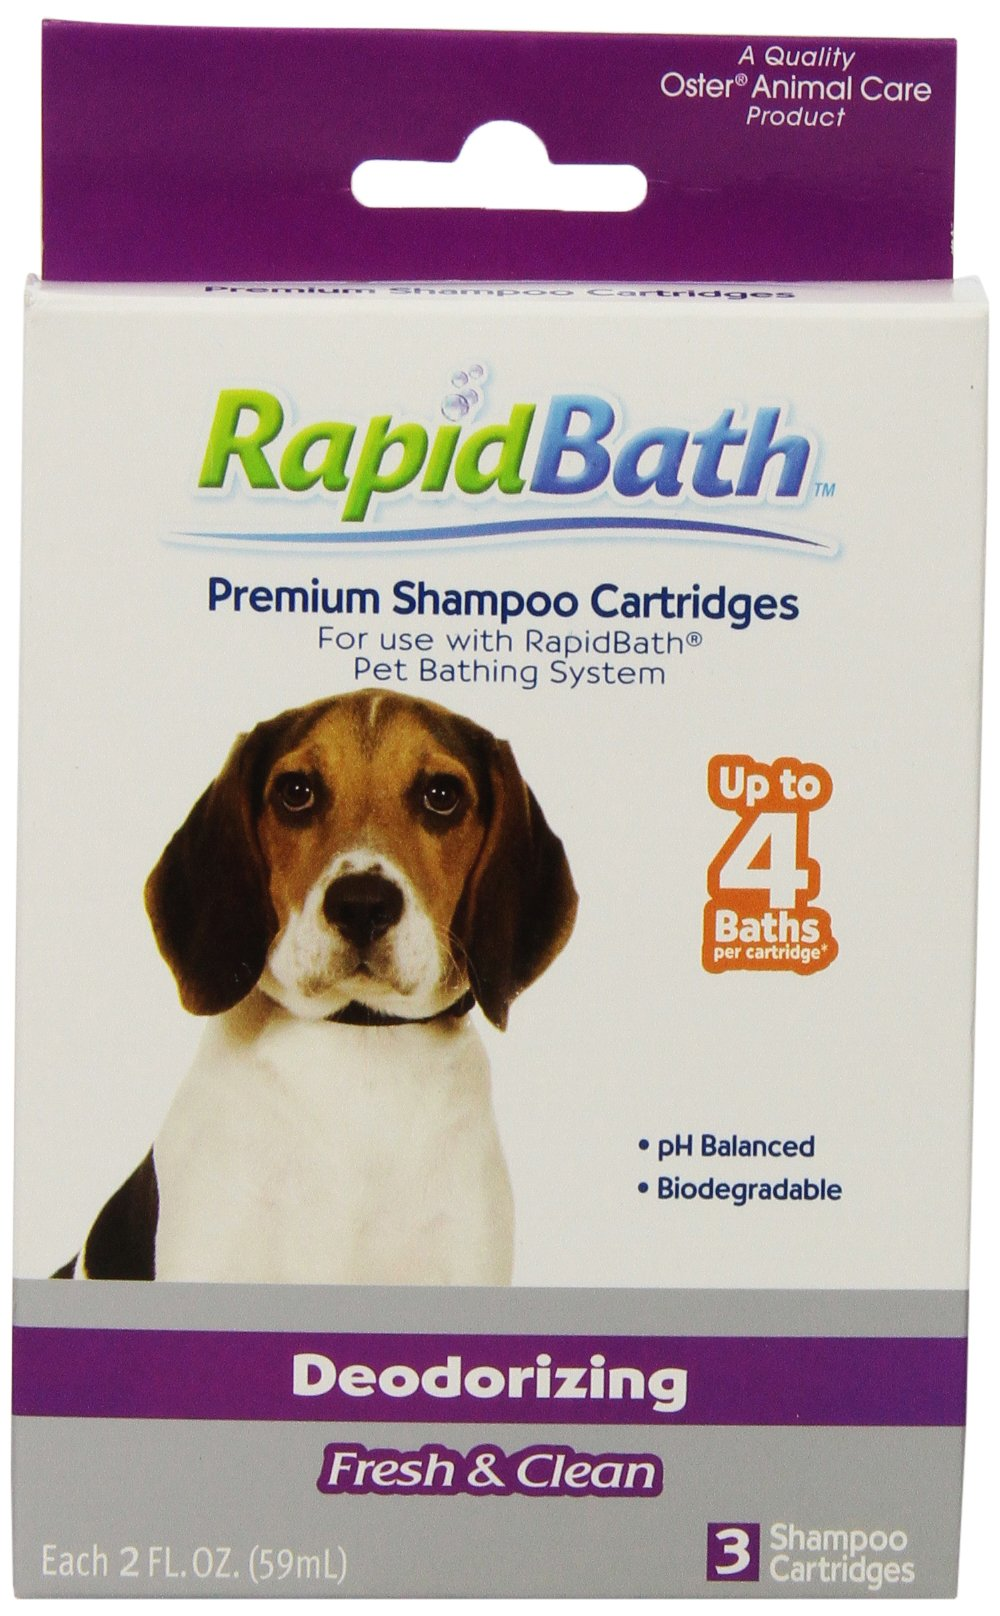 HydroSurge Rapid Bath Deodorizing Animal Shampoo Cartridges, 3/pack